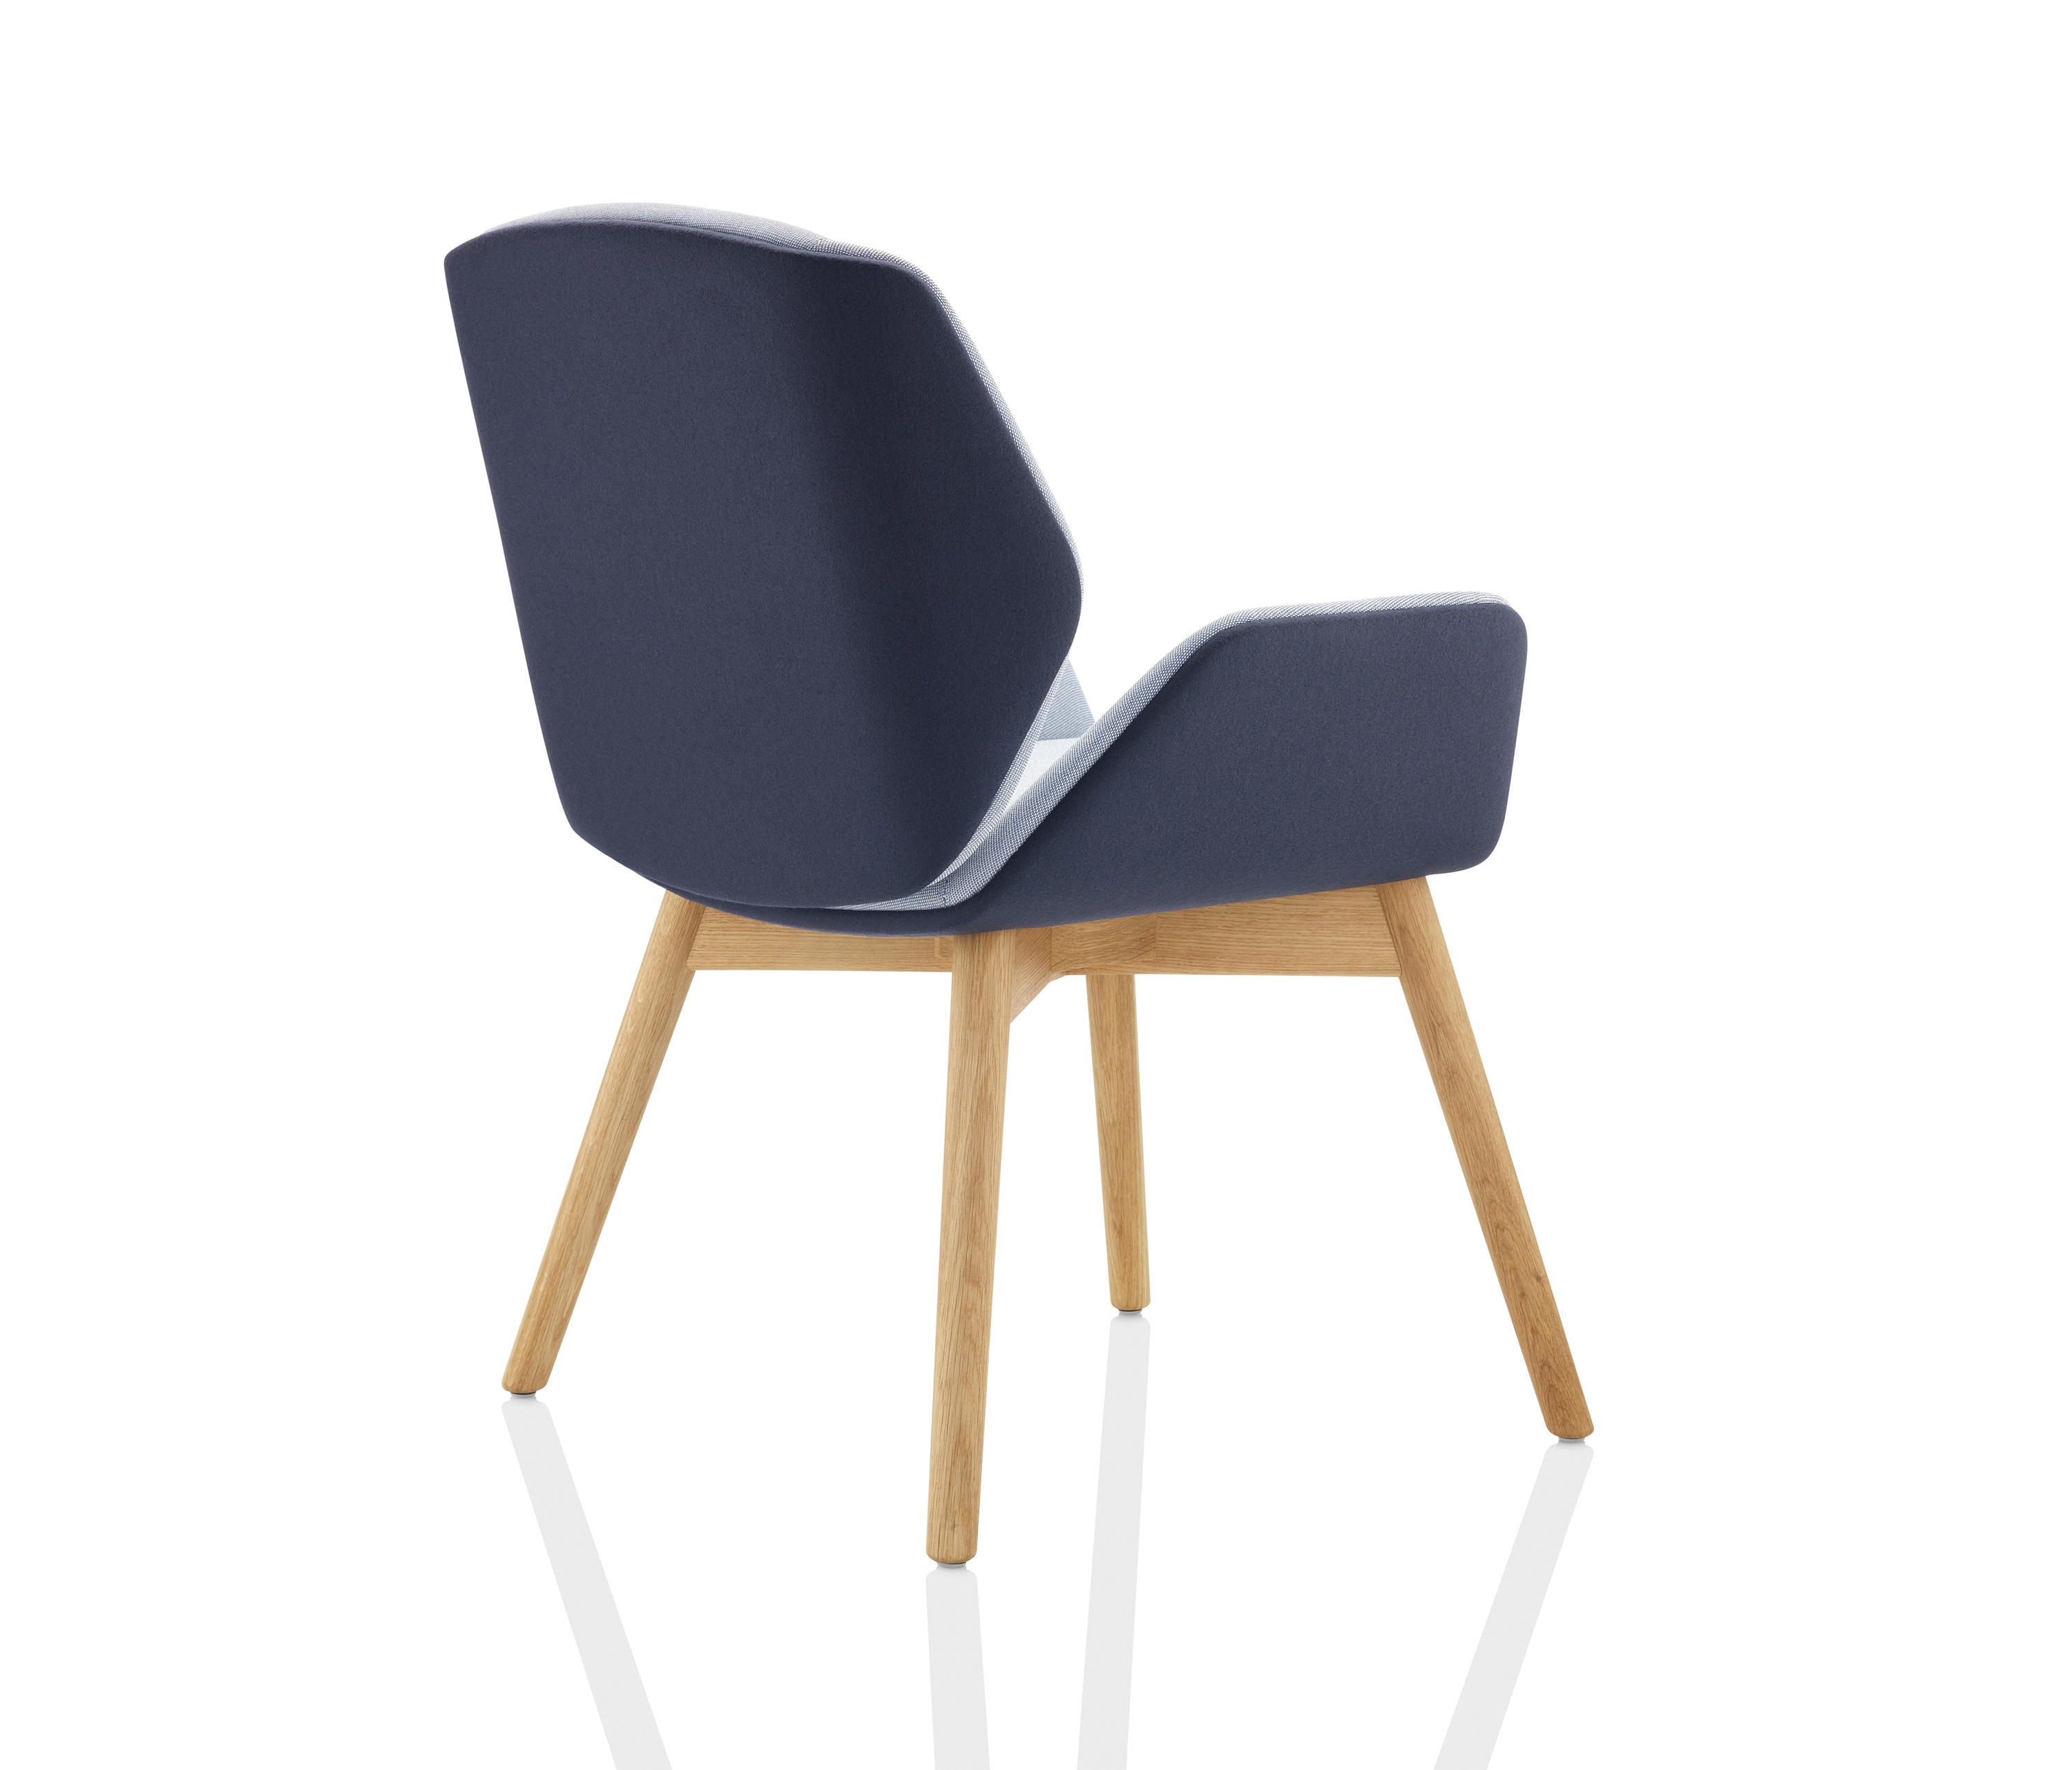 ... Kruze by Boss Design | Chairs ...  sc 1 st  Architonic : kruze chair - Cheerinfomania.Com